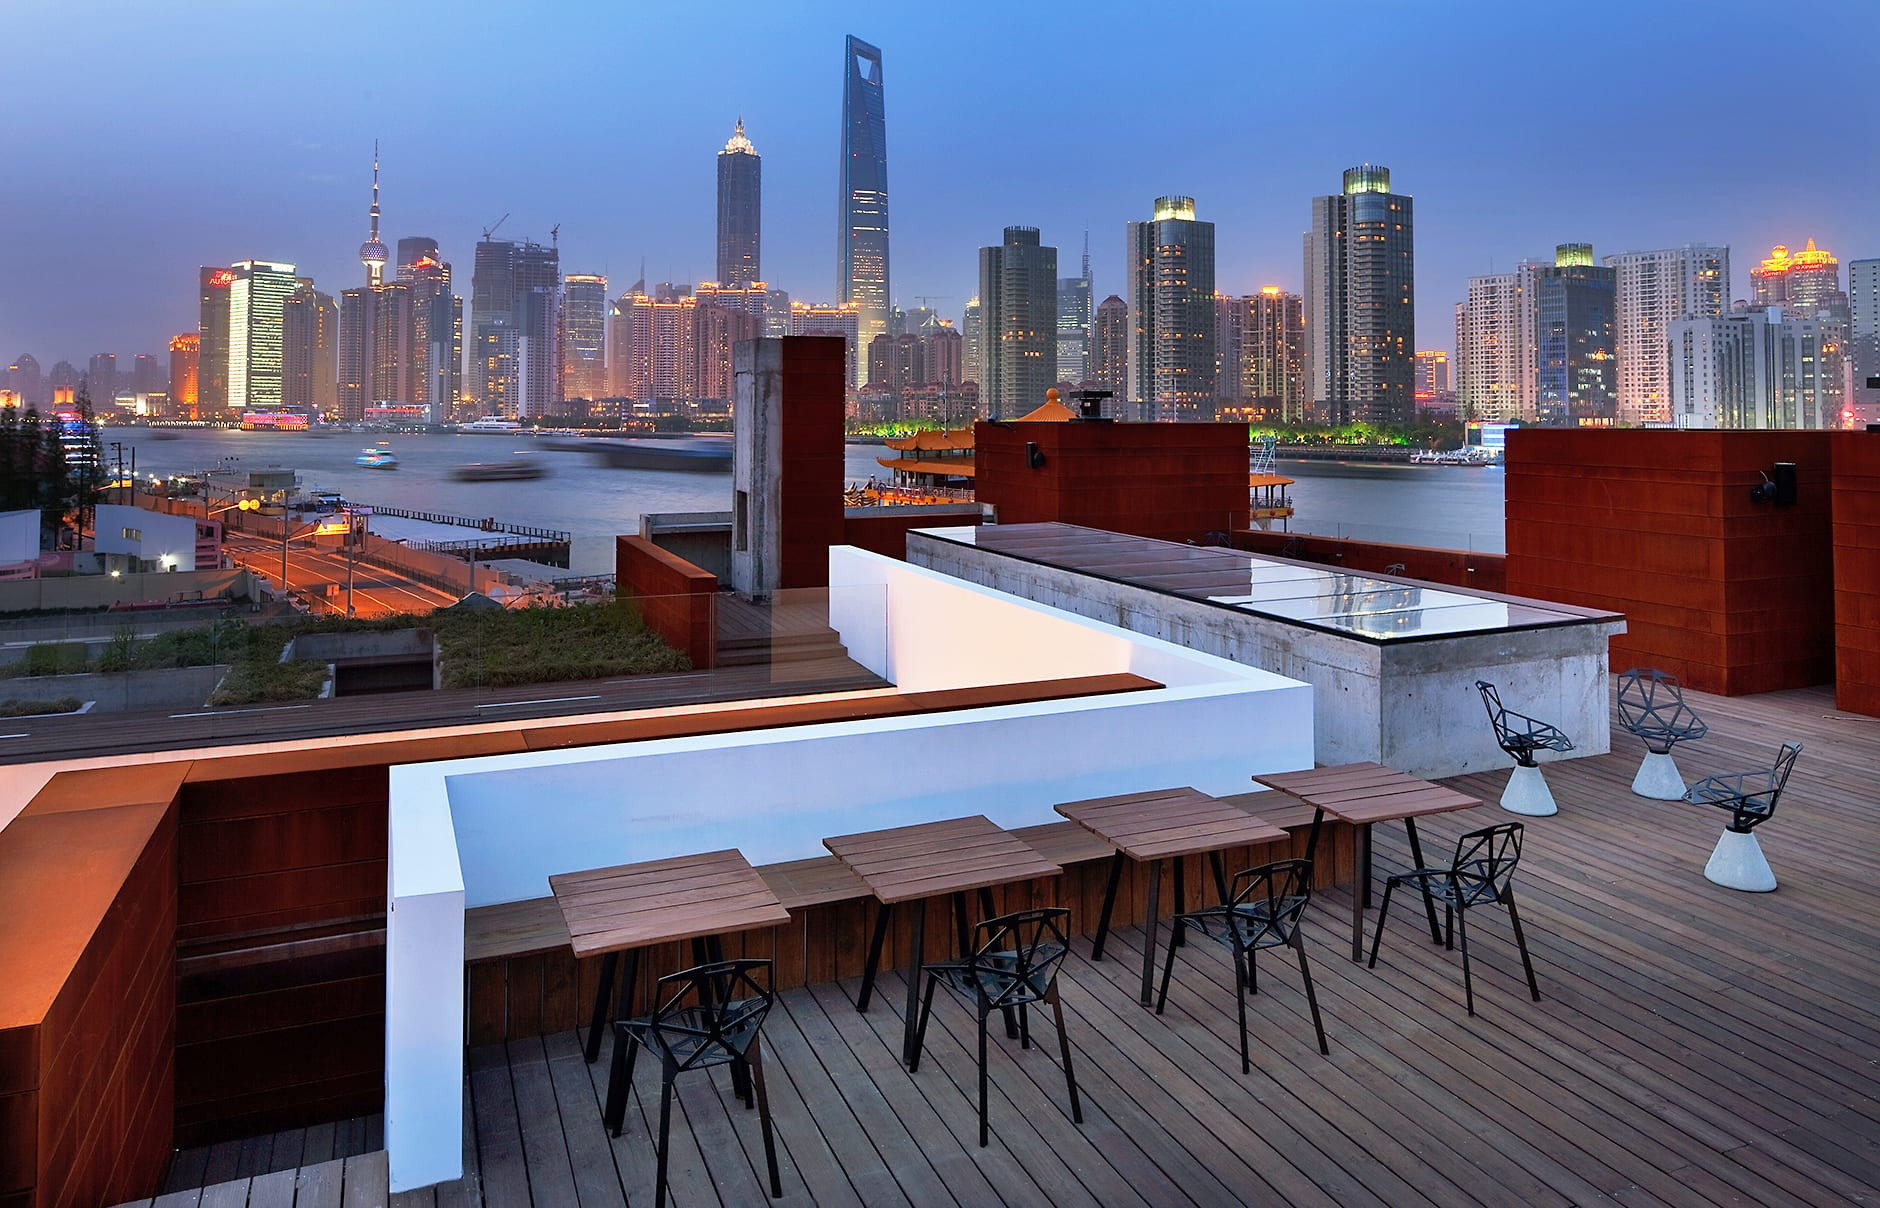 The Roof. The Waterhouse at South Bund, Shanghai, China. © The Waterhouse at South Bund